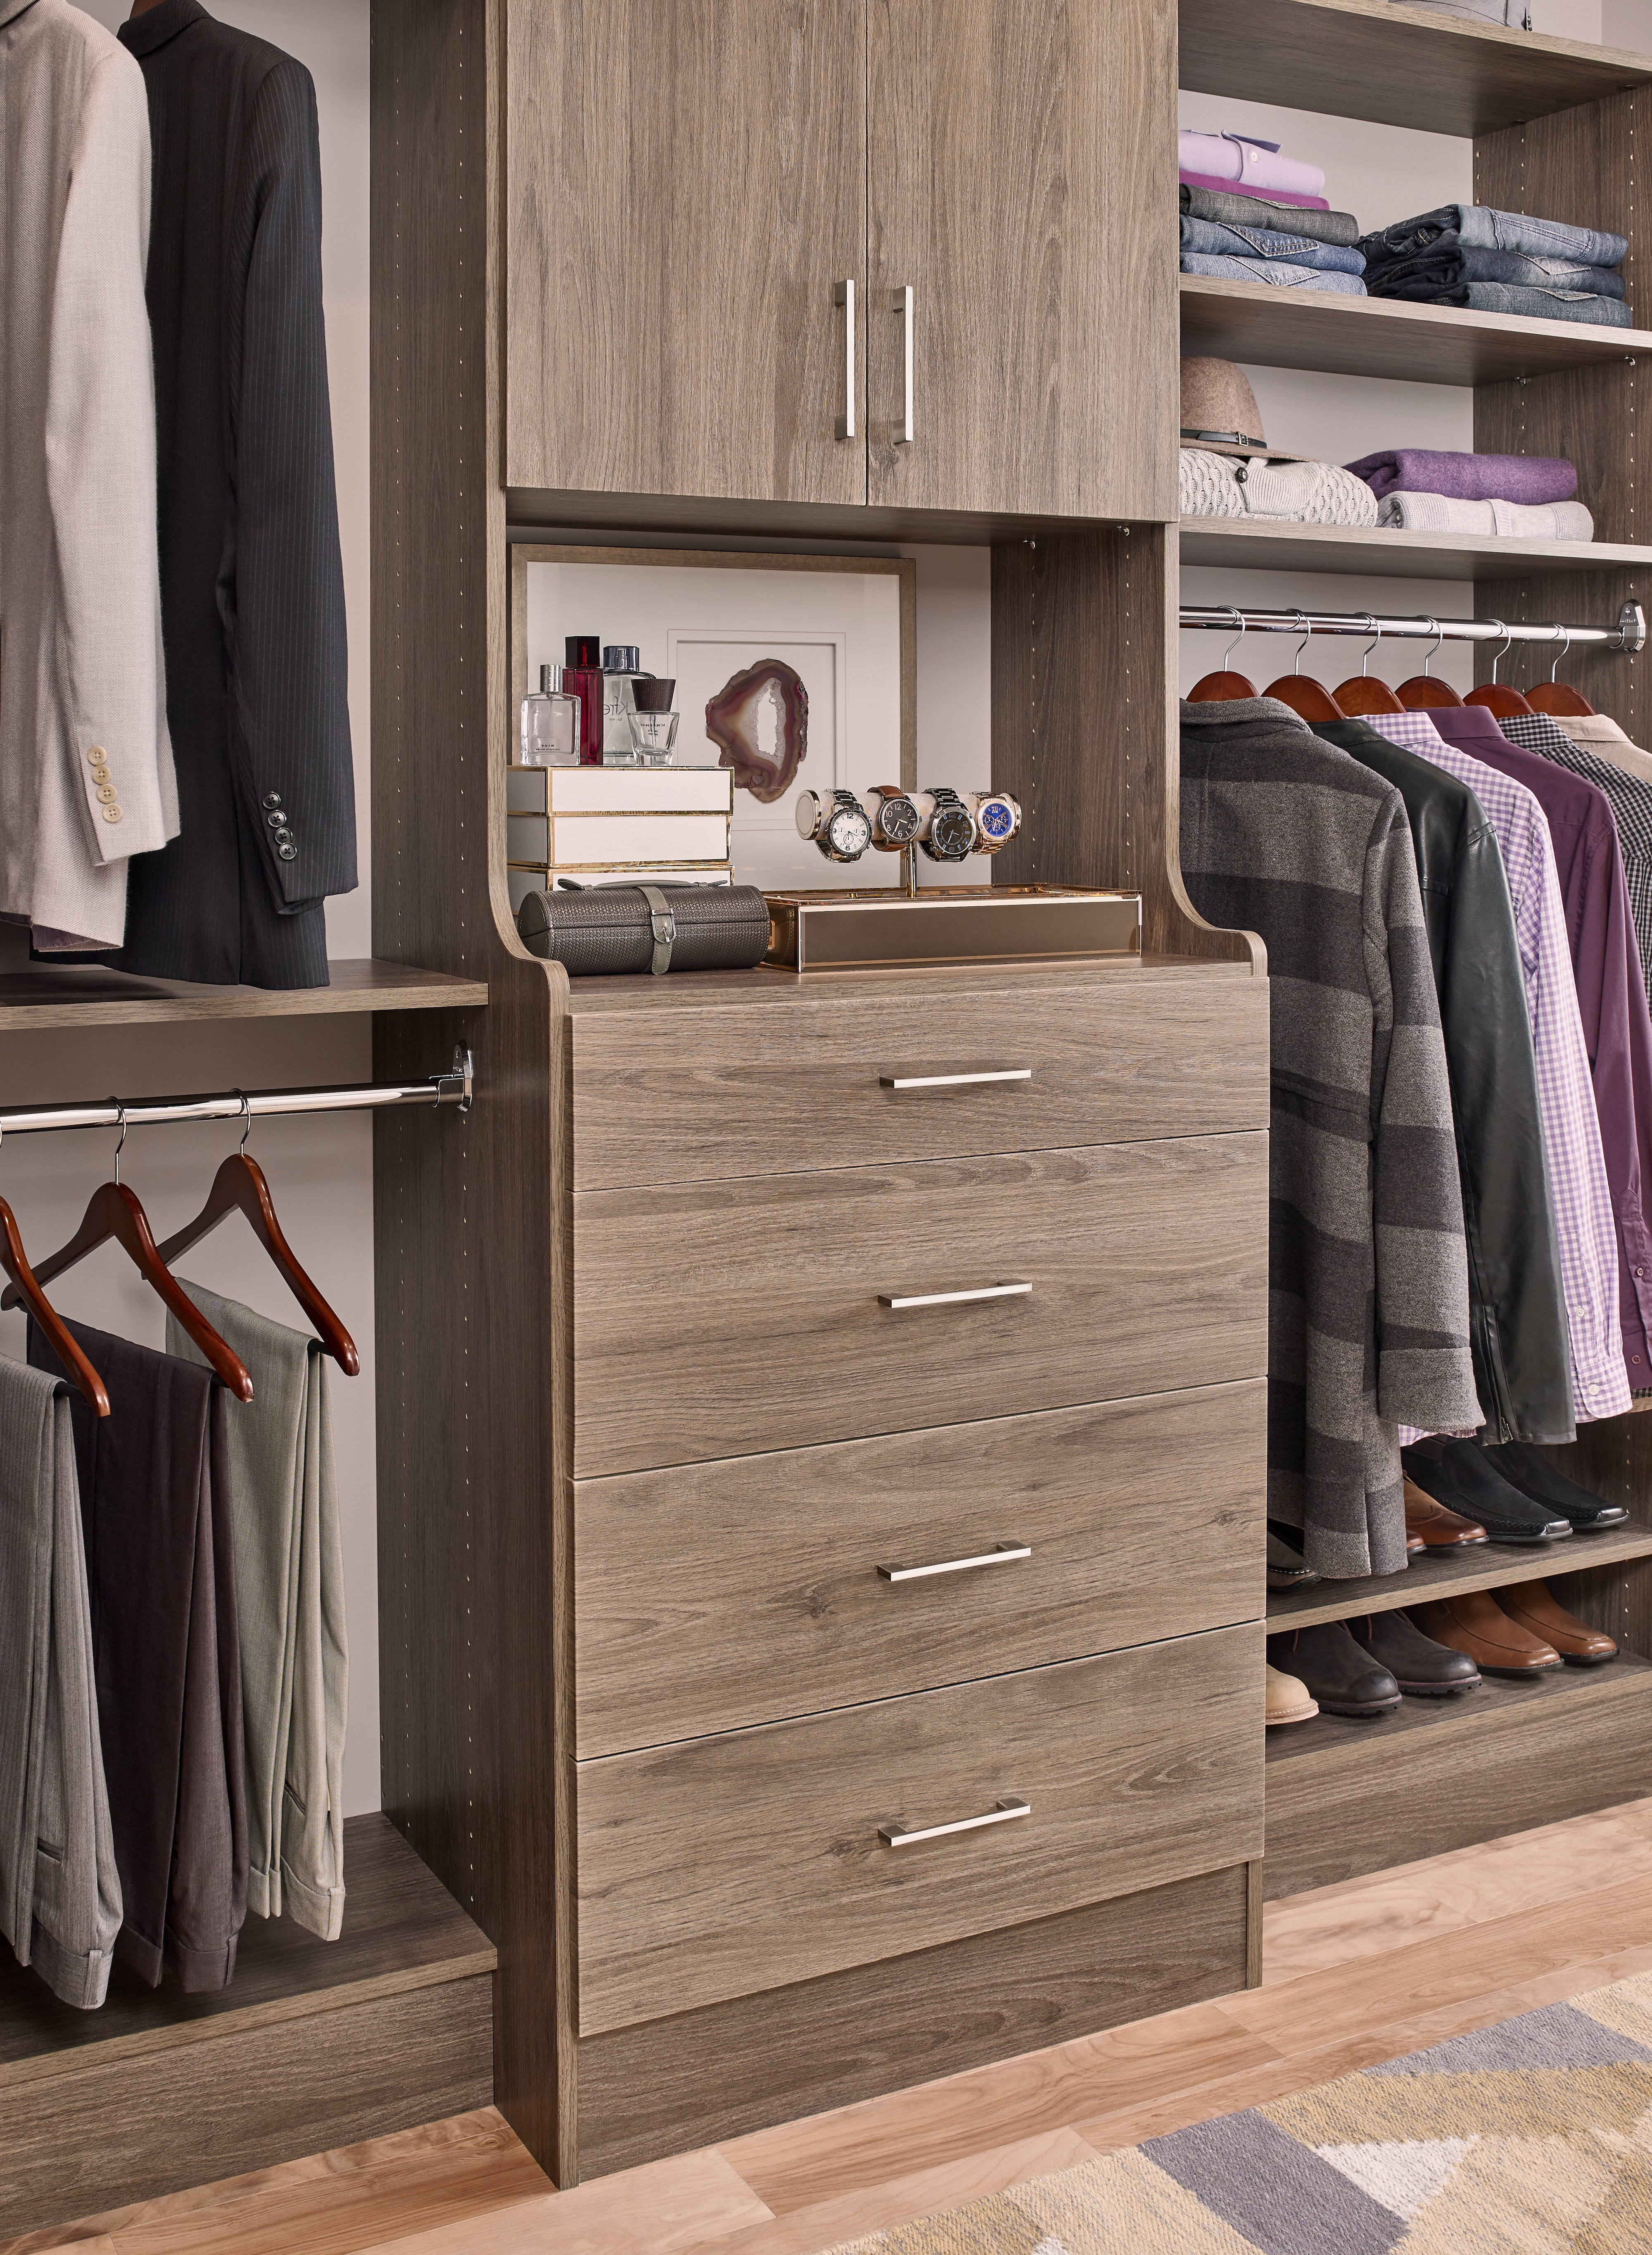 maid drawer x closetmaid in cfm drawers hayneedle modern closet suitesymphony product master